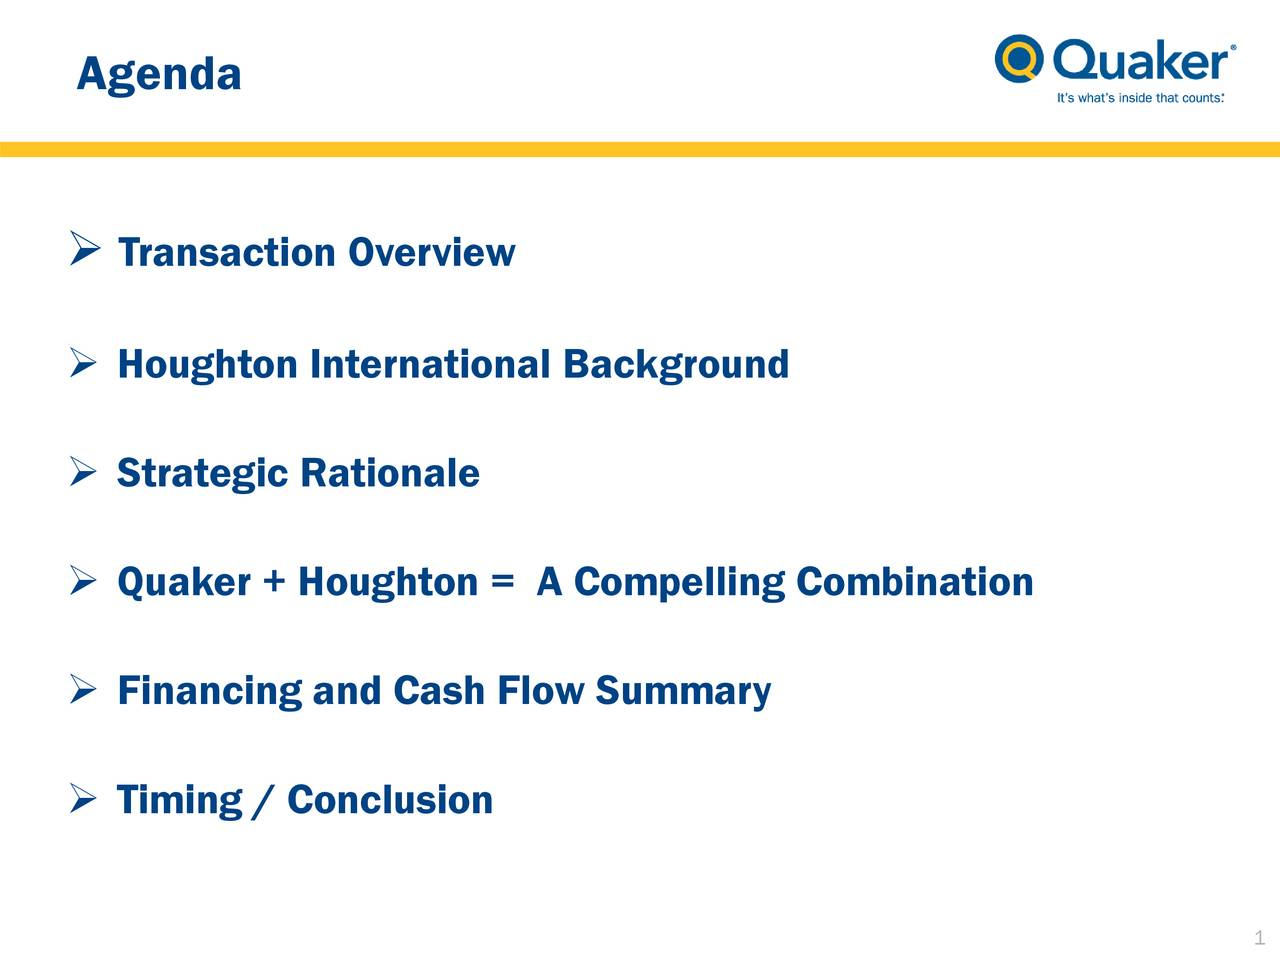 Transaction Overview Houghton International Background Strategic Rationale Quaker + Houghton = A Compelling Combination Financing and Cash Flow Summary Timing / Conclusion